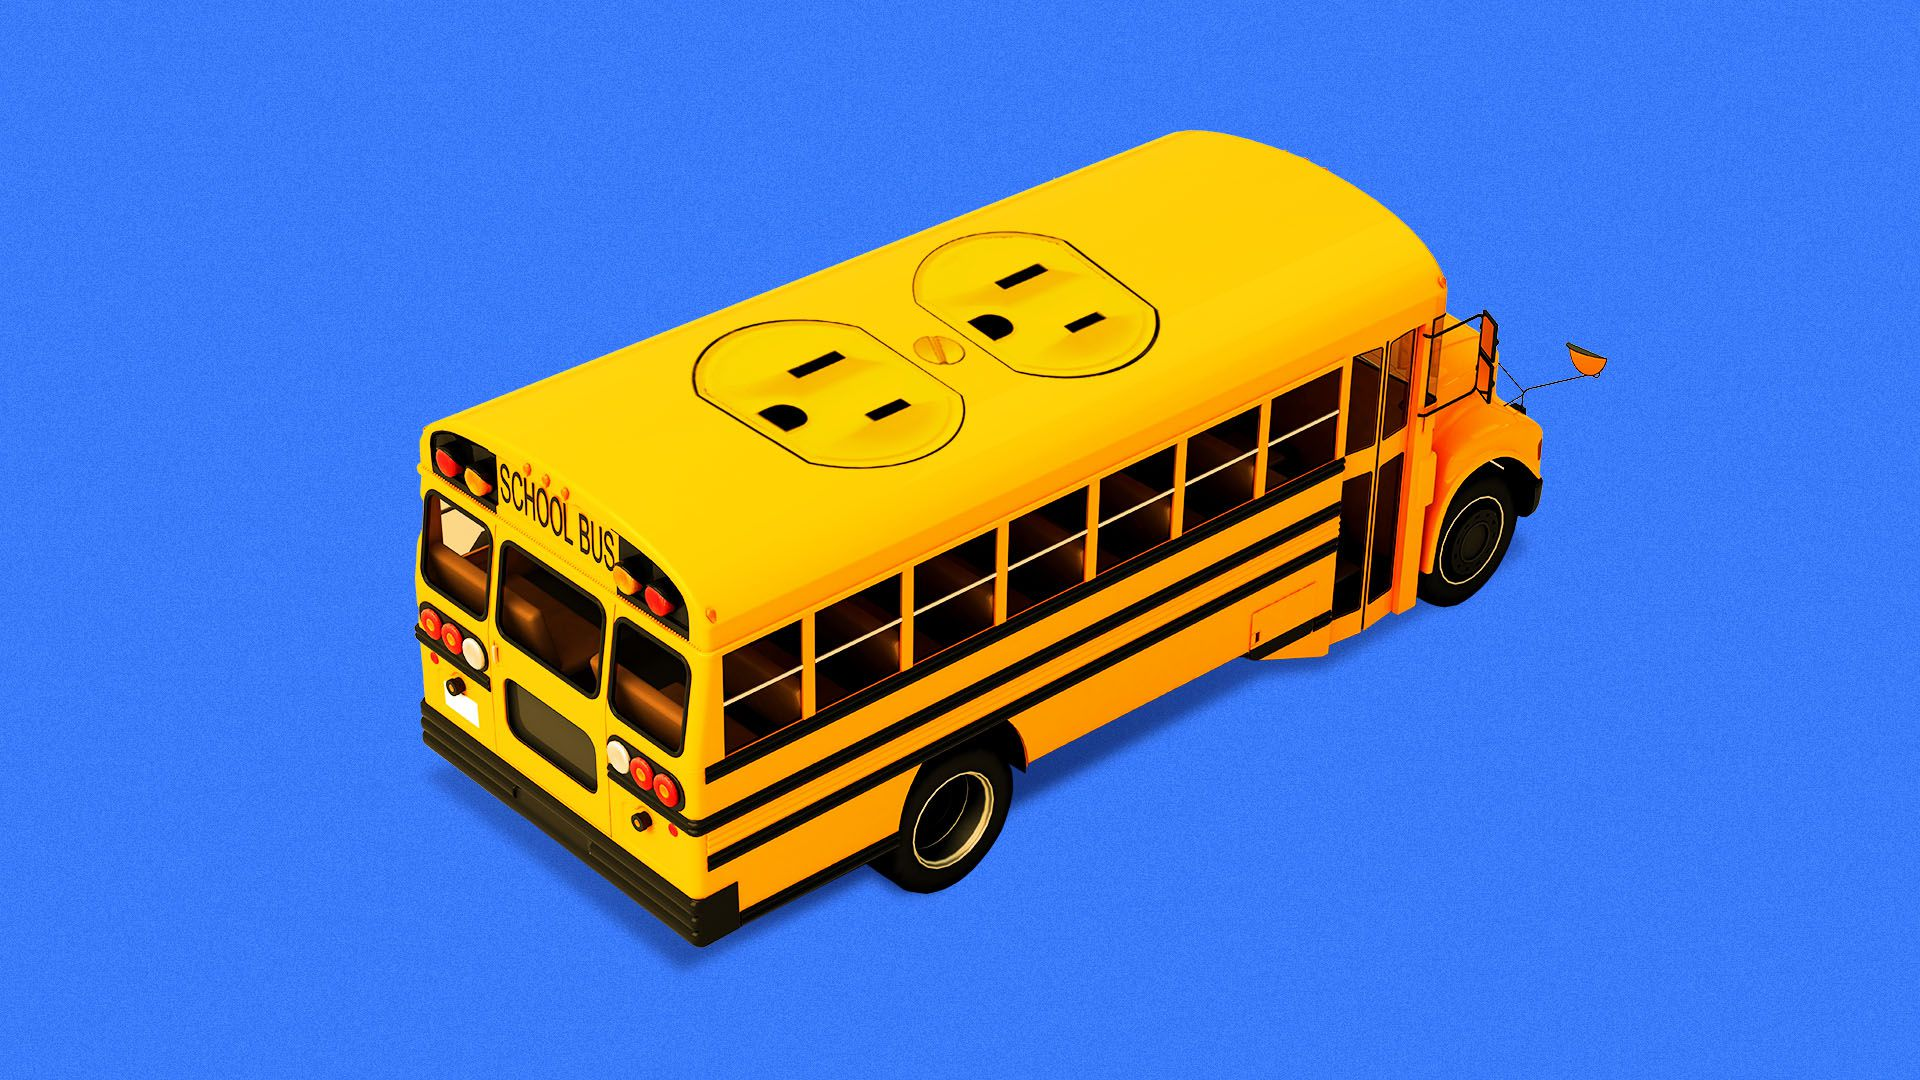 Electric school buses are batteries for the grid - Axios